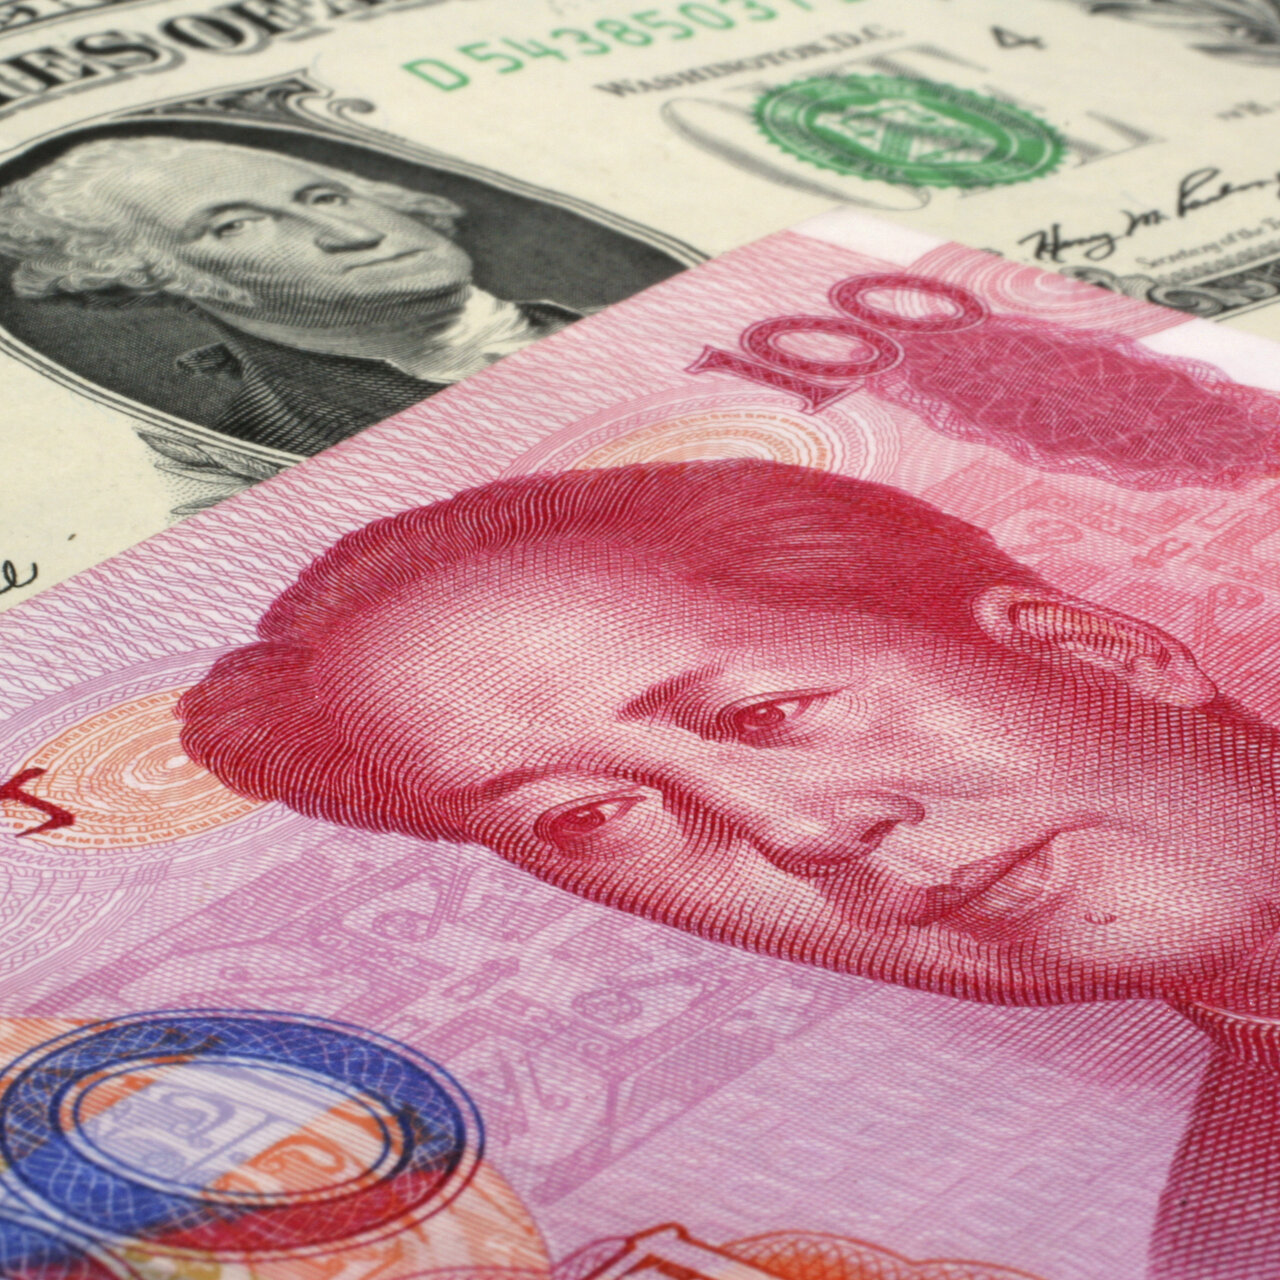 A Matter Of Faith On The Chinese Yuan